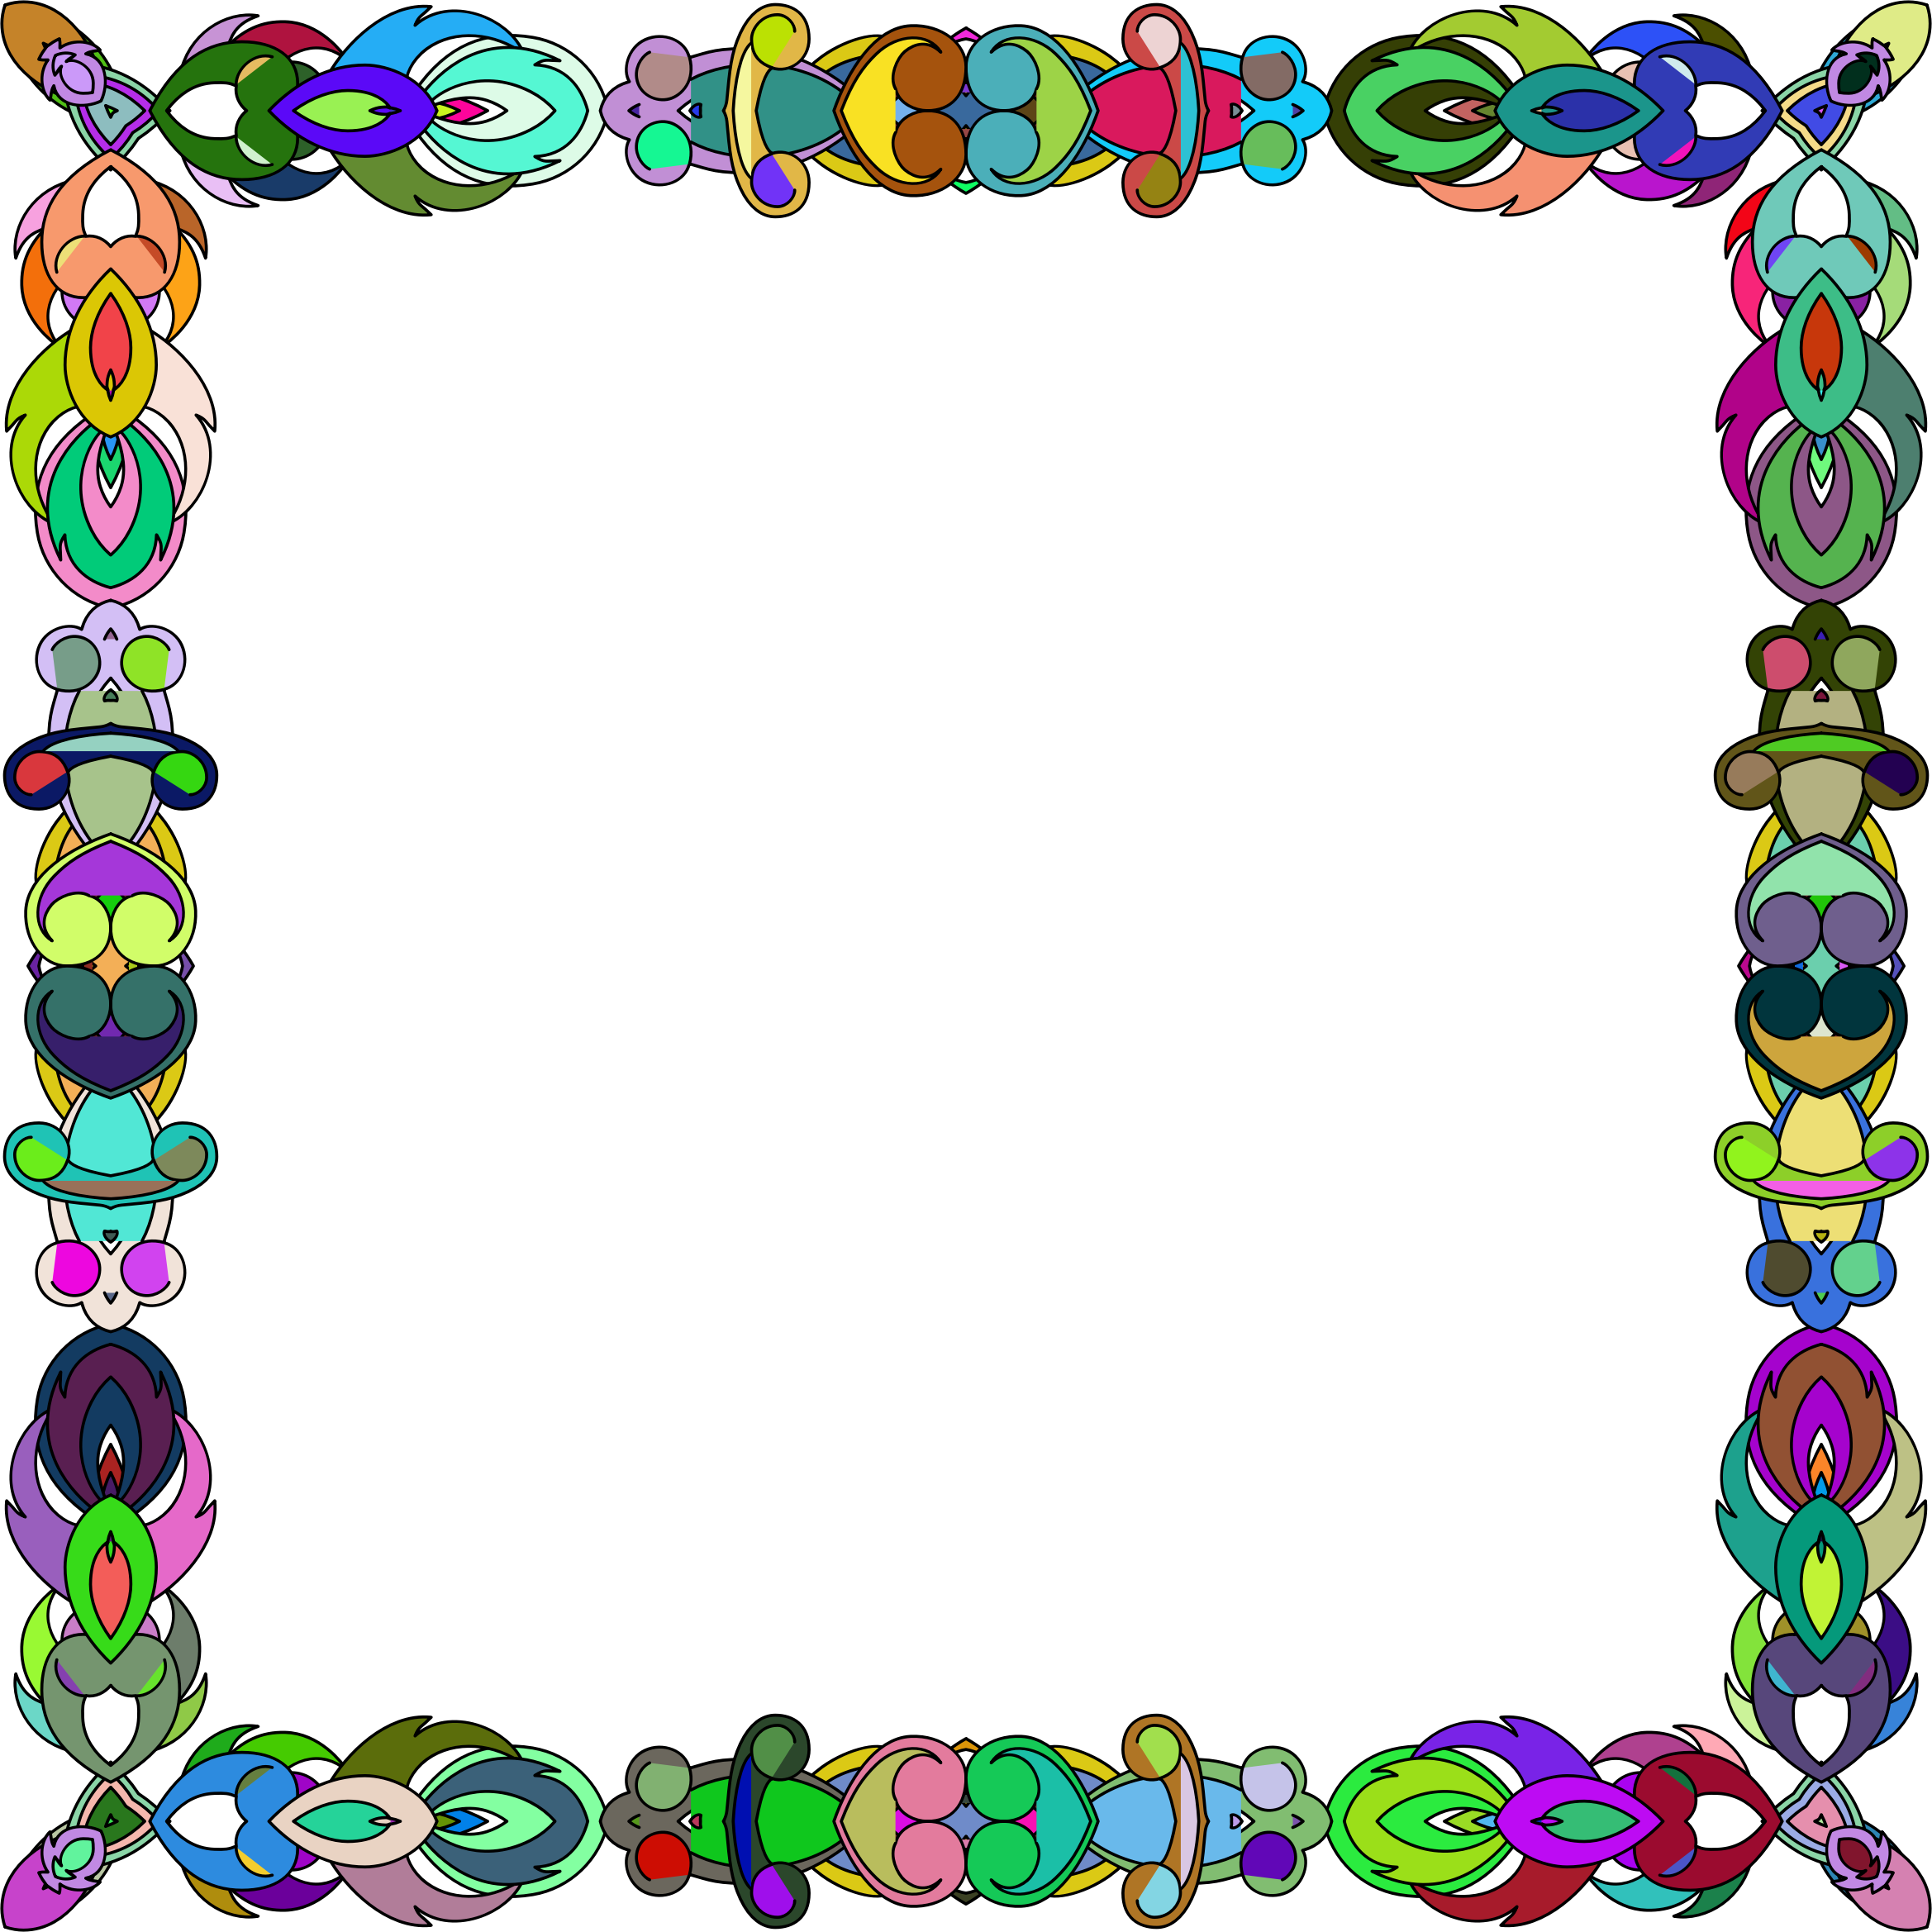 Abstract icons png free. Frame clipart colorful